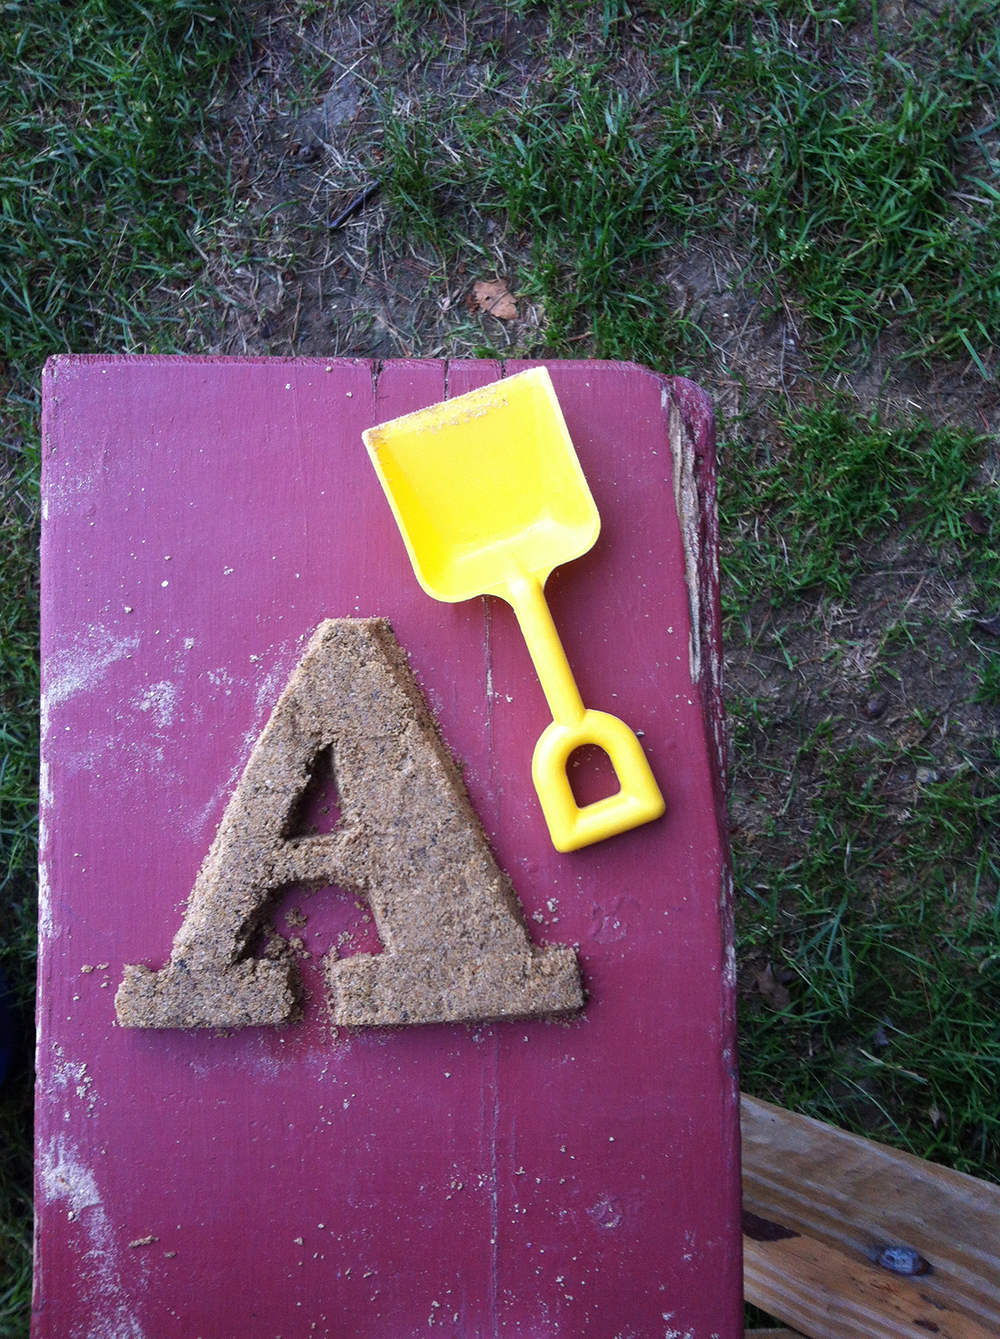 July 7: A is for Abakee. Sand art at the picnic table.